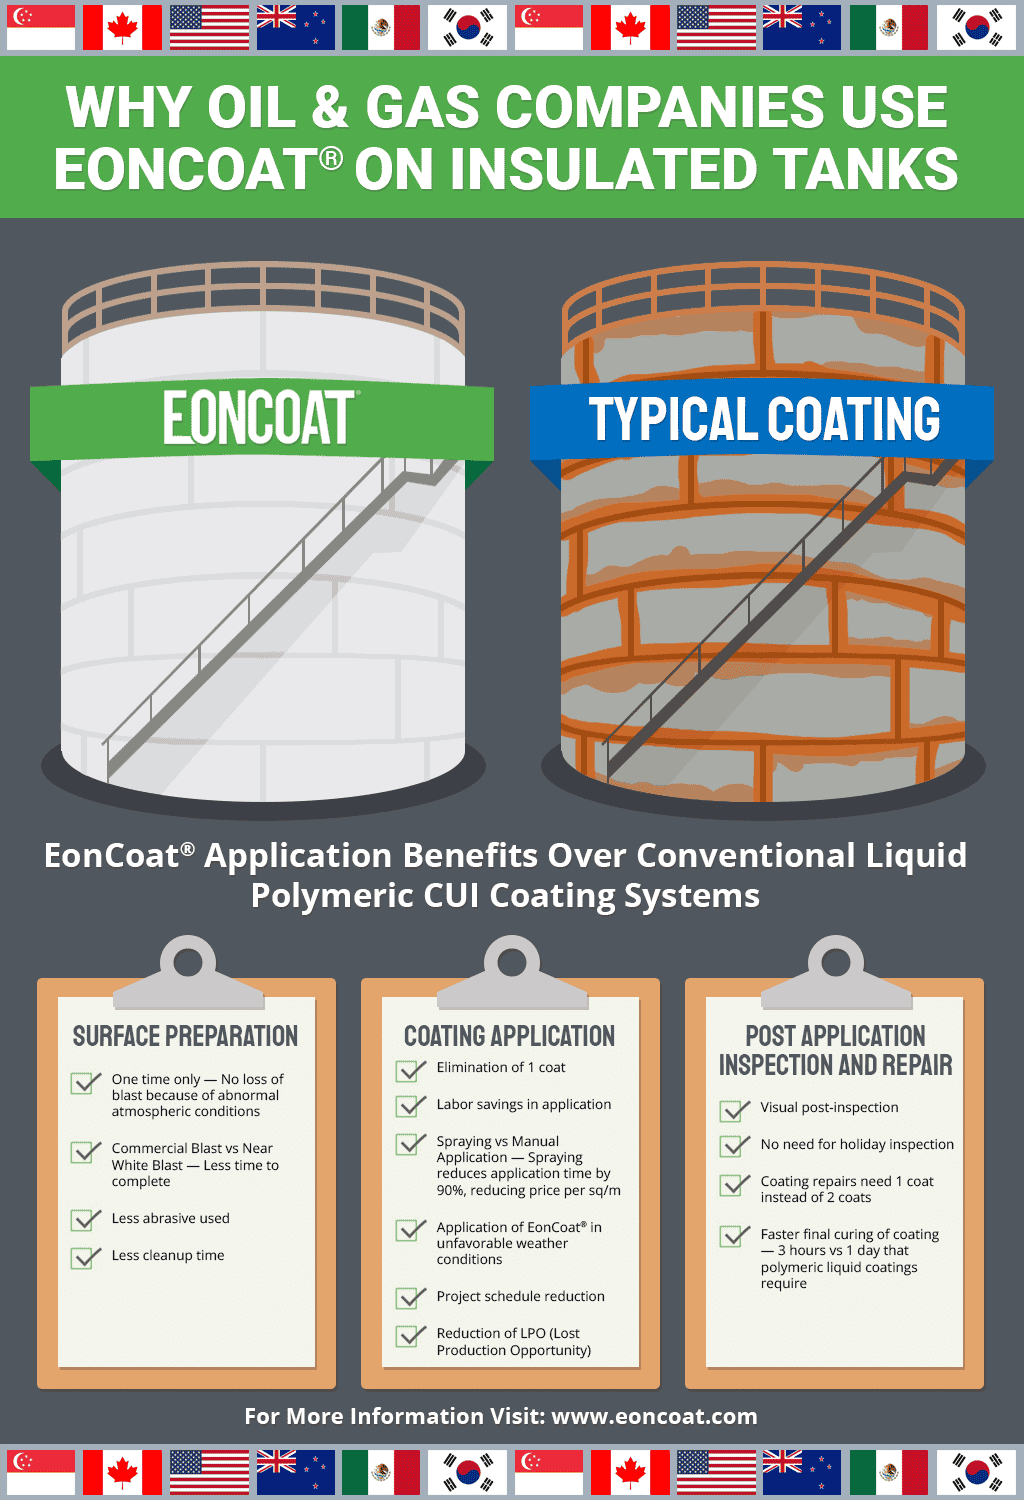 Why Oil and Gas Companies Use EonCoat® on Insulated Tanks